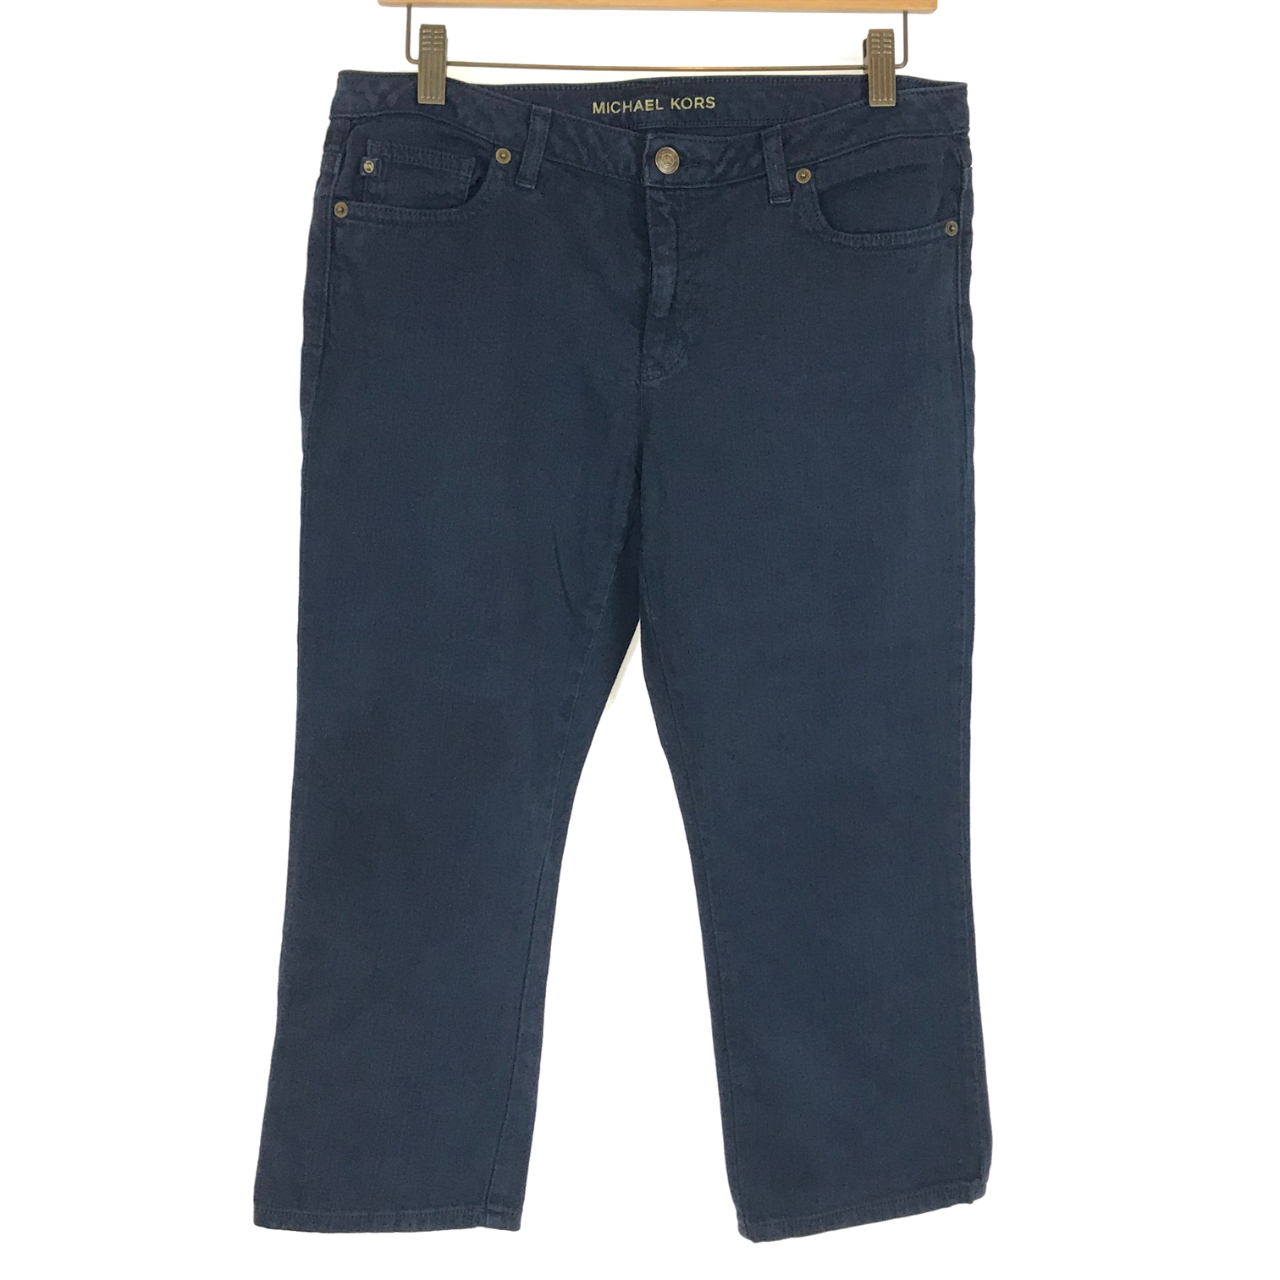 Product Image 1 - Cropped Straight Leg Jeans Michael Kors  Classic,